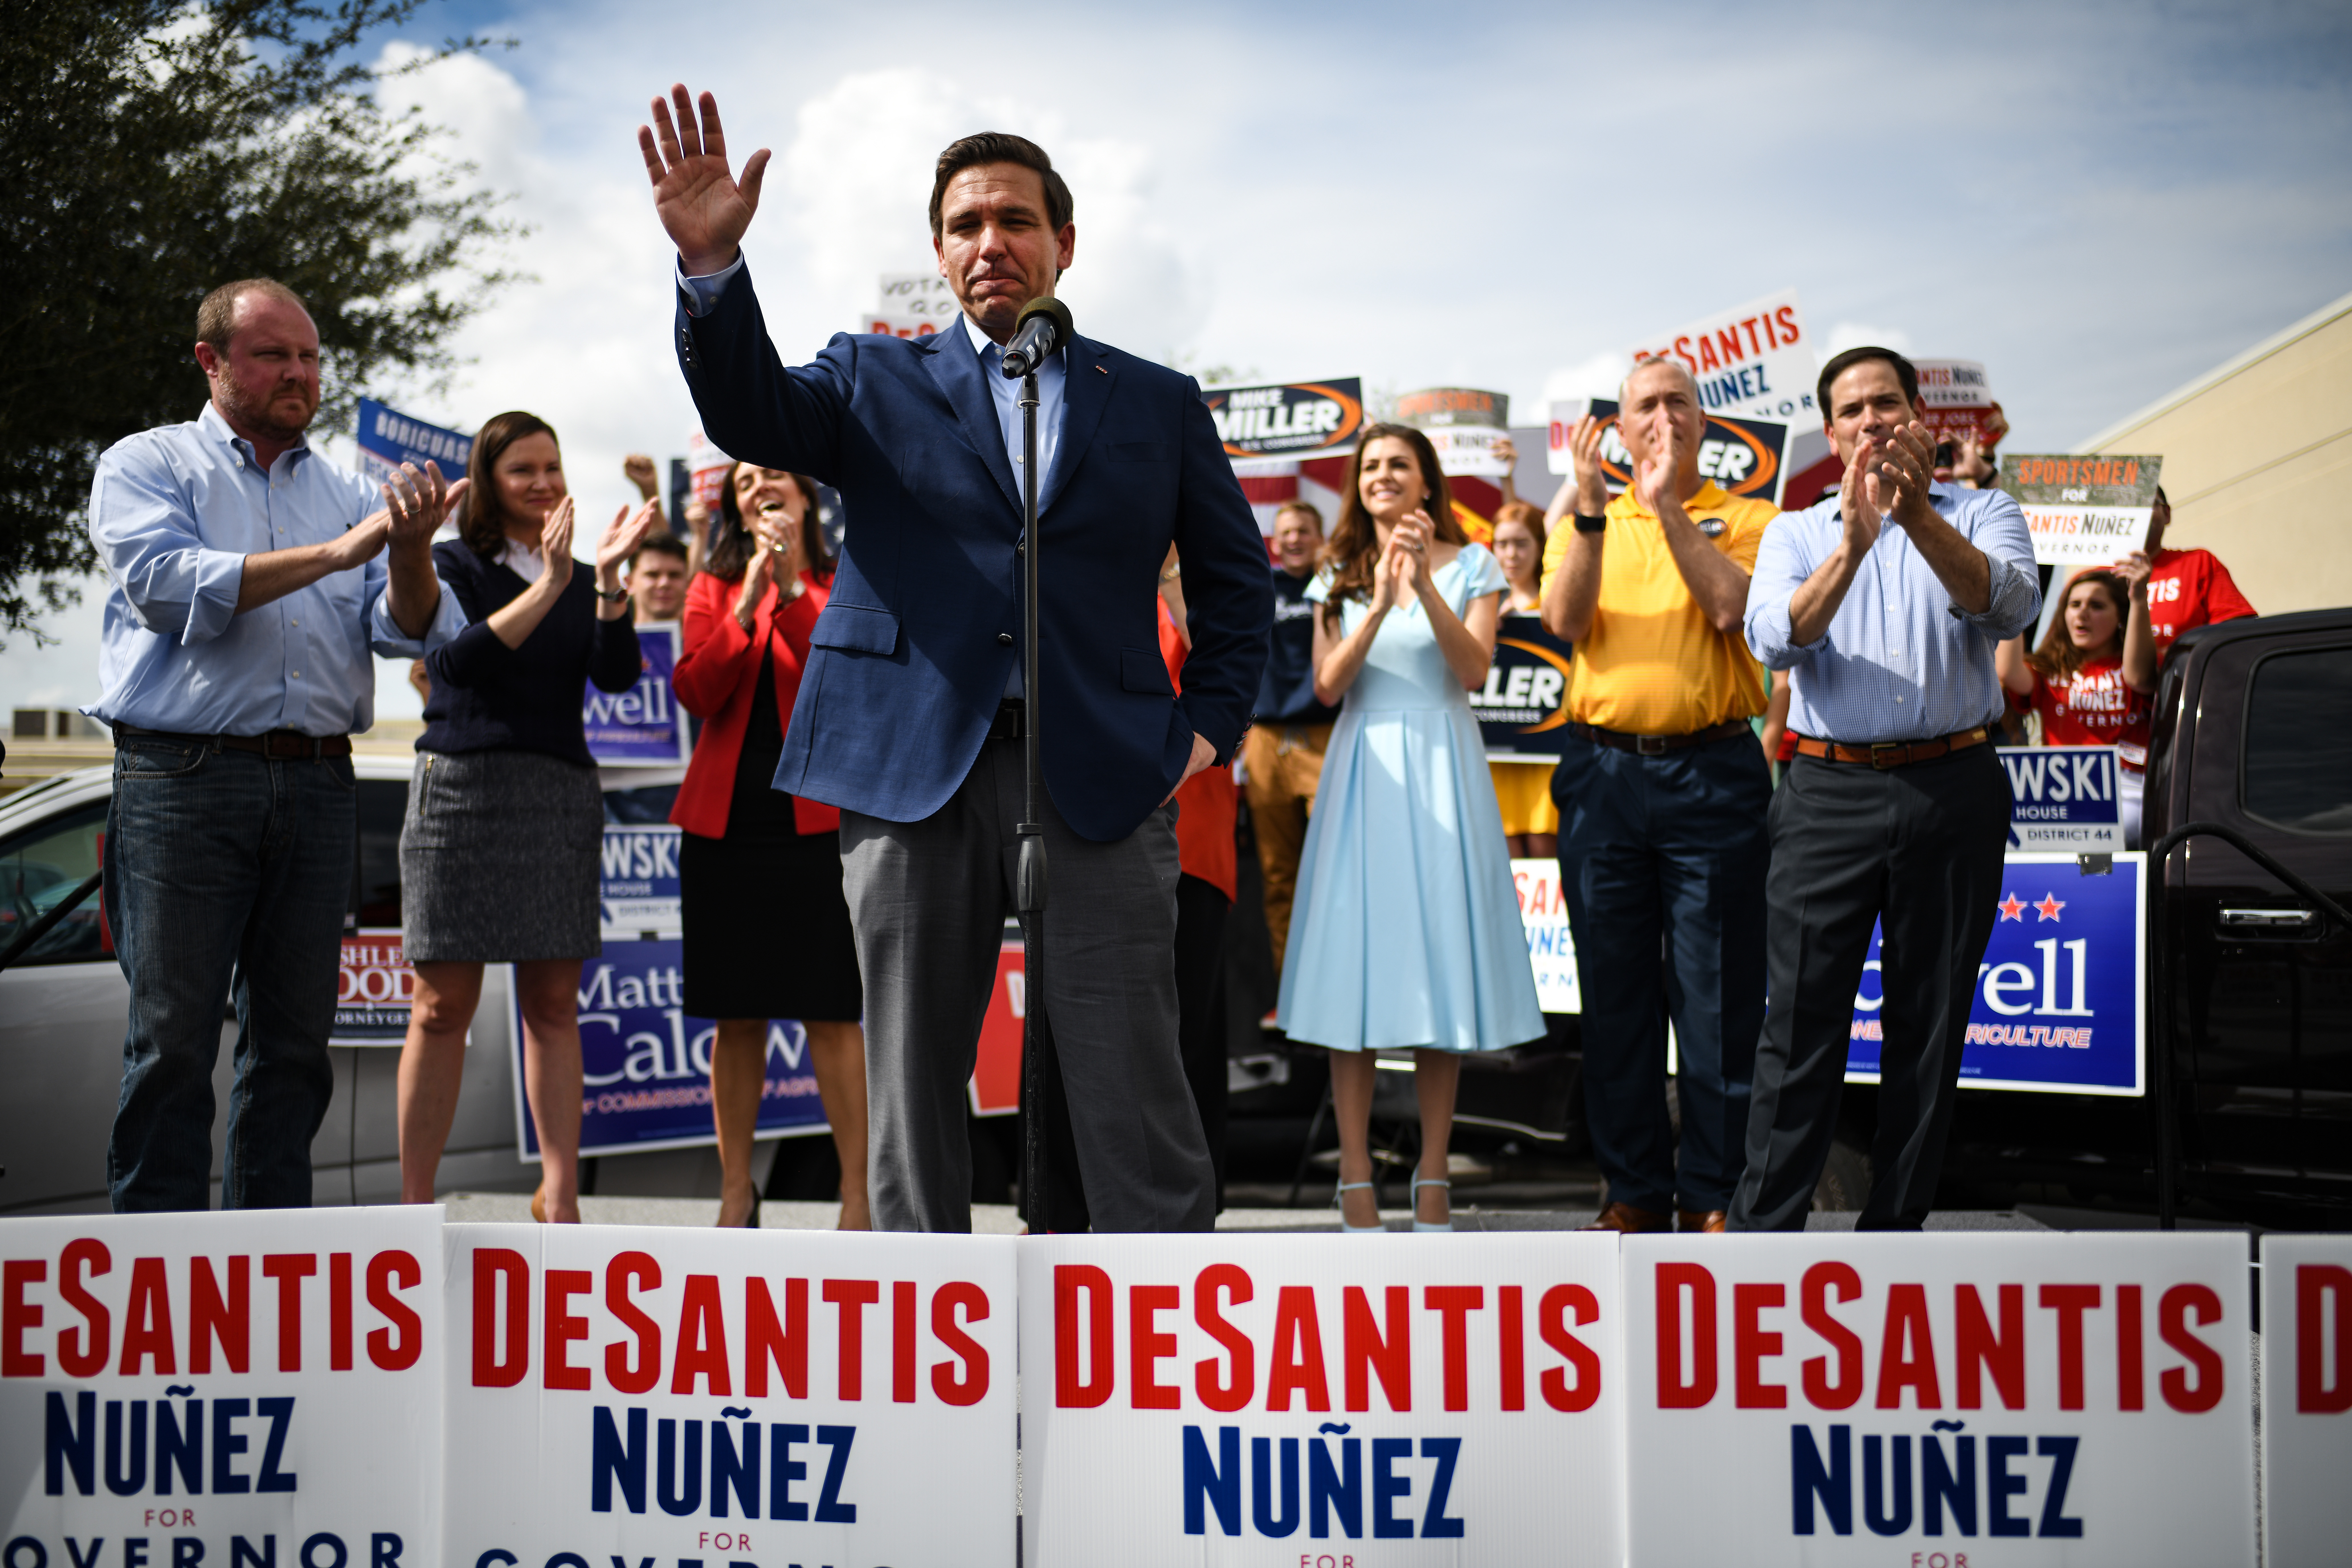 Republican candidate for Governor of Florida Ron DeSantis attends a rally at Freedom Pharmacy on the final day of campaigning in the midterm elections on November 5, 2018 in Orlando, Florida. (Jeff J Mitchell/Getty Images)